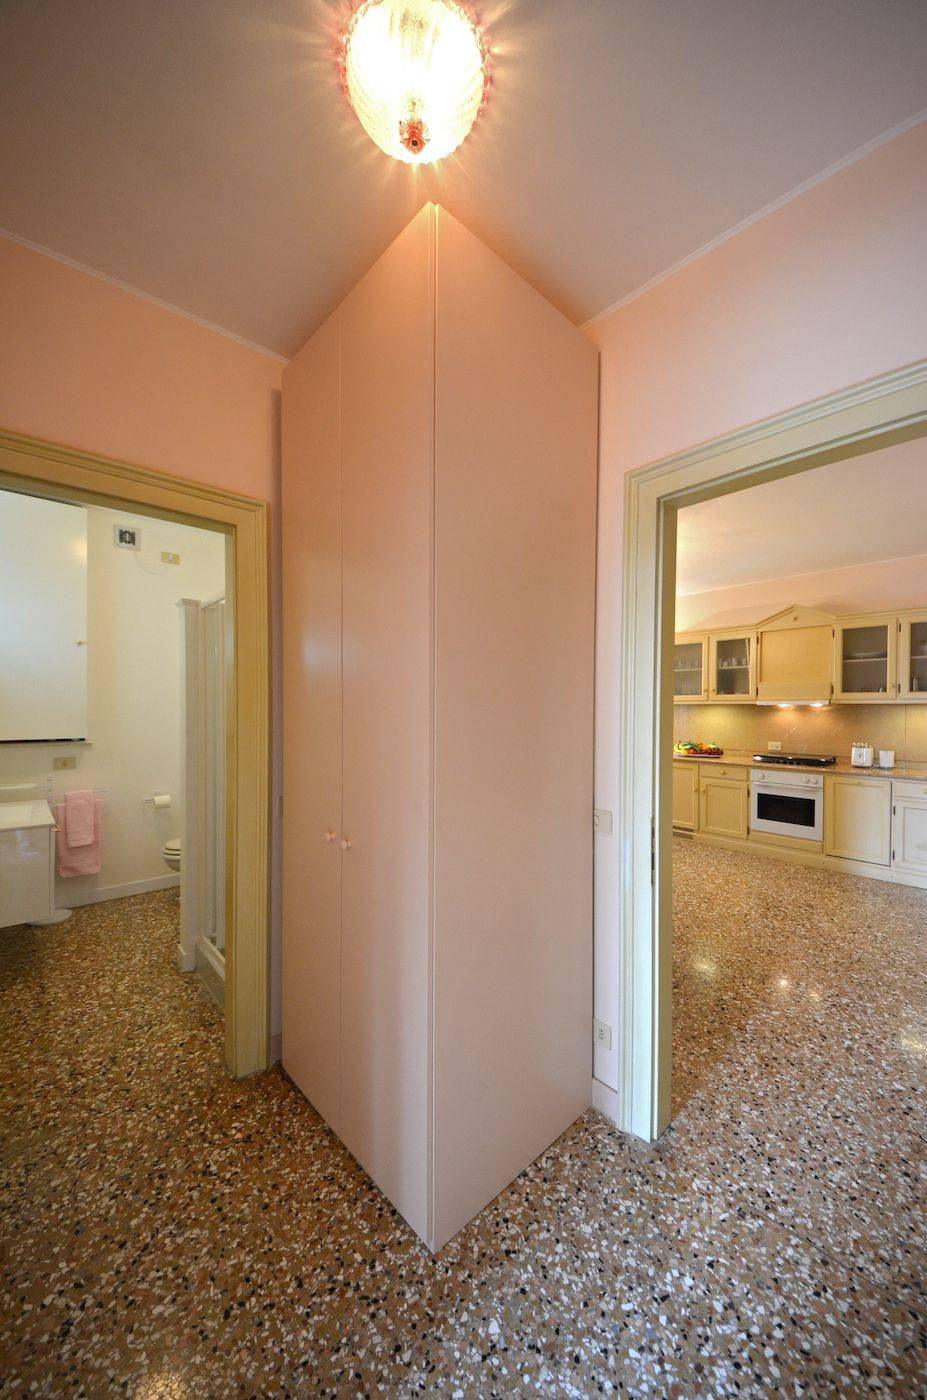 between the dining room and the bathroom there is a big closet with washing machine and dryer